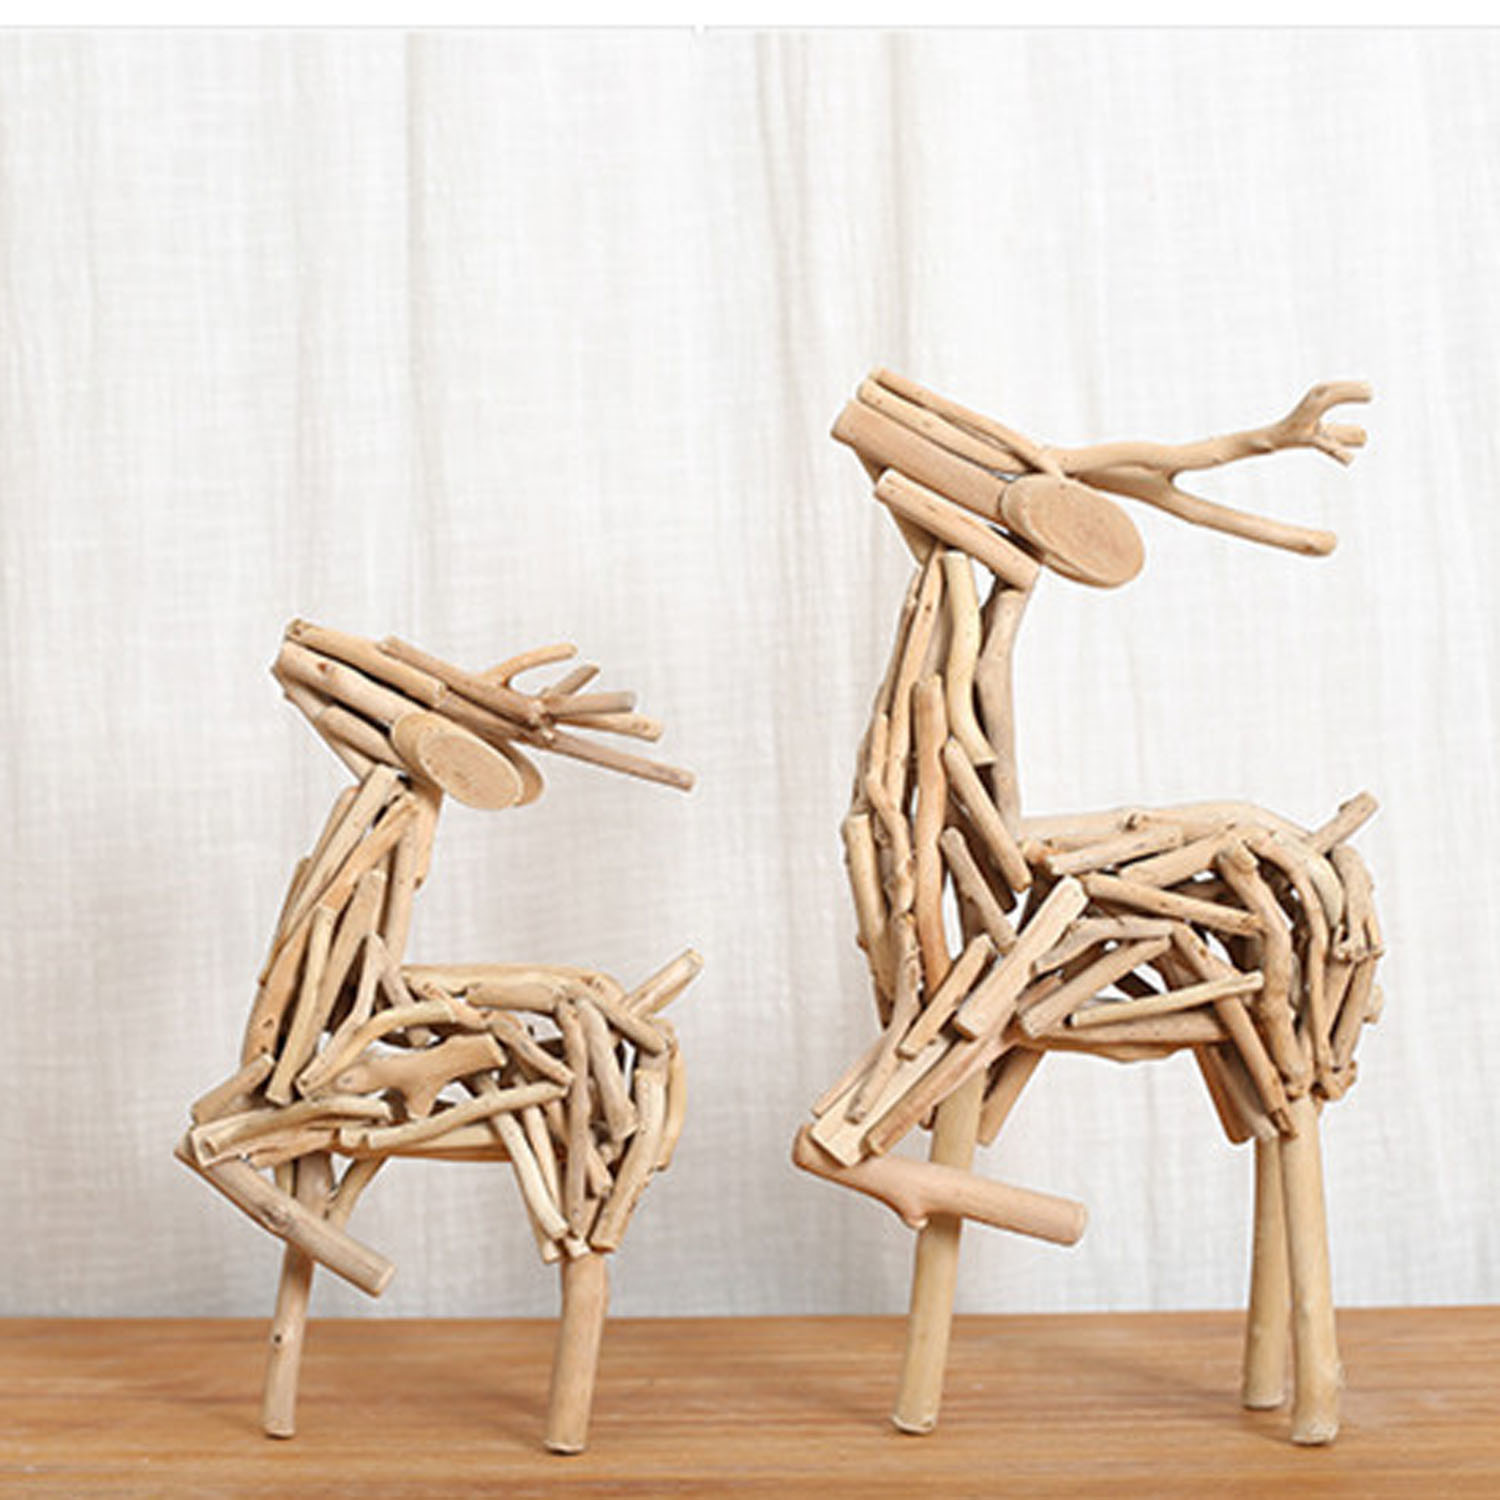 China Creative Wooden Craft Table Decor Lovely Deer 100% Handmade Natural  Wood Home/Office Figurines Birthday/Christmas Gift Christmas Decoration    China ...